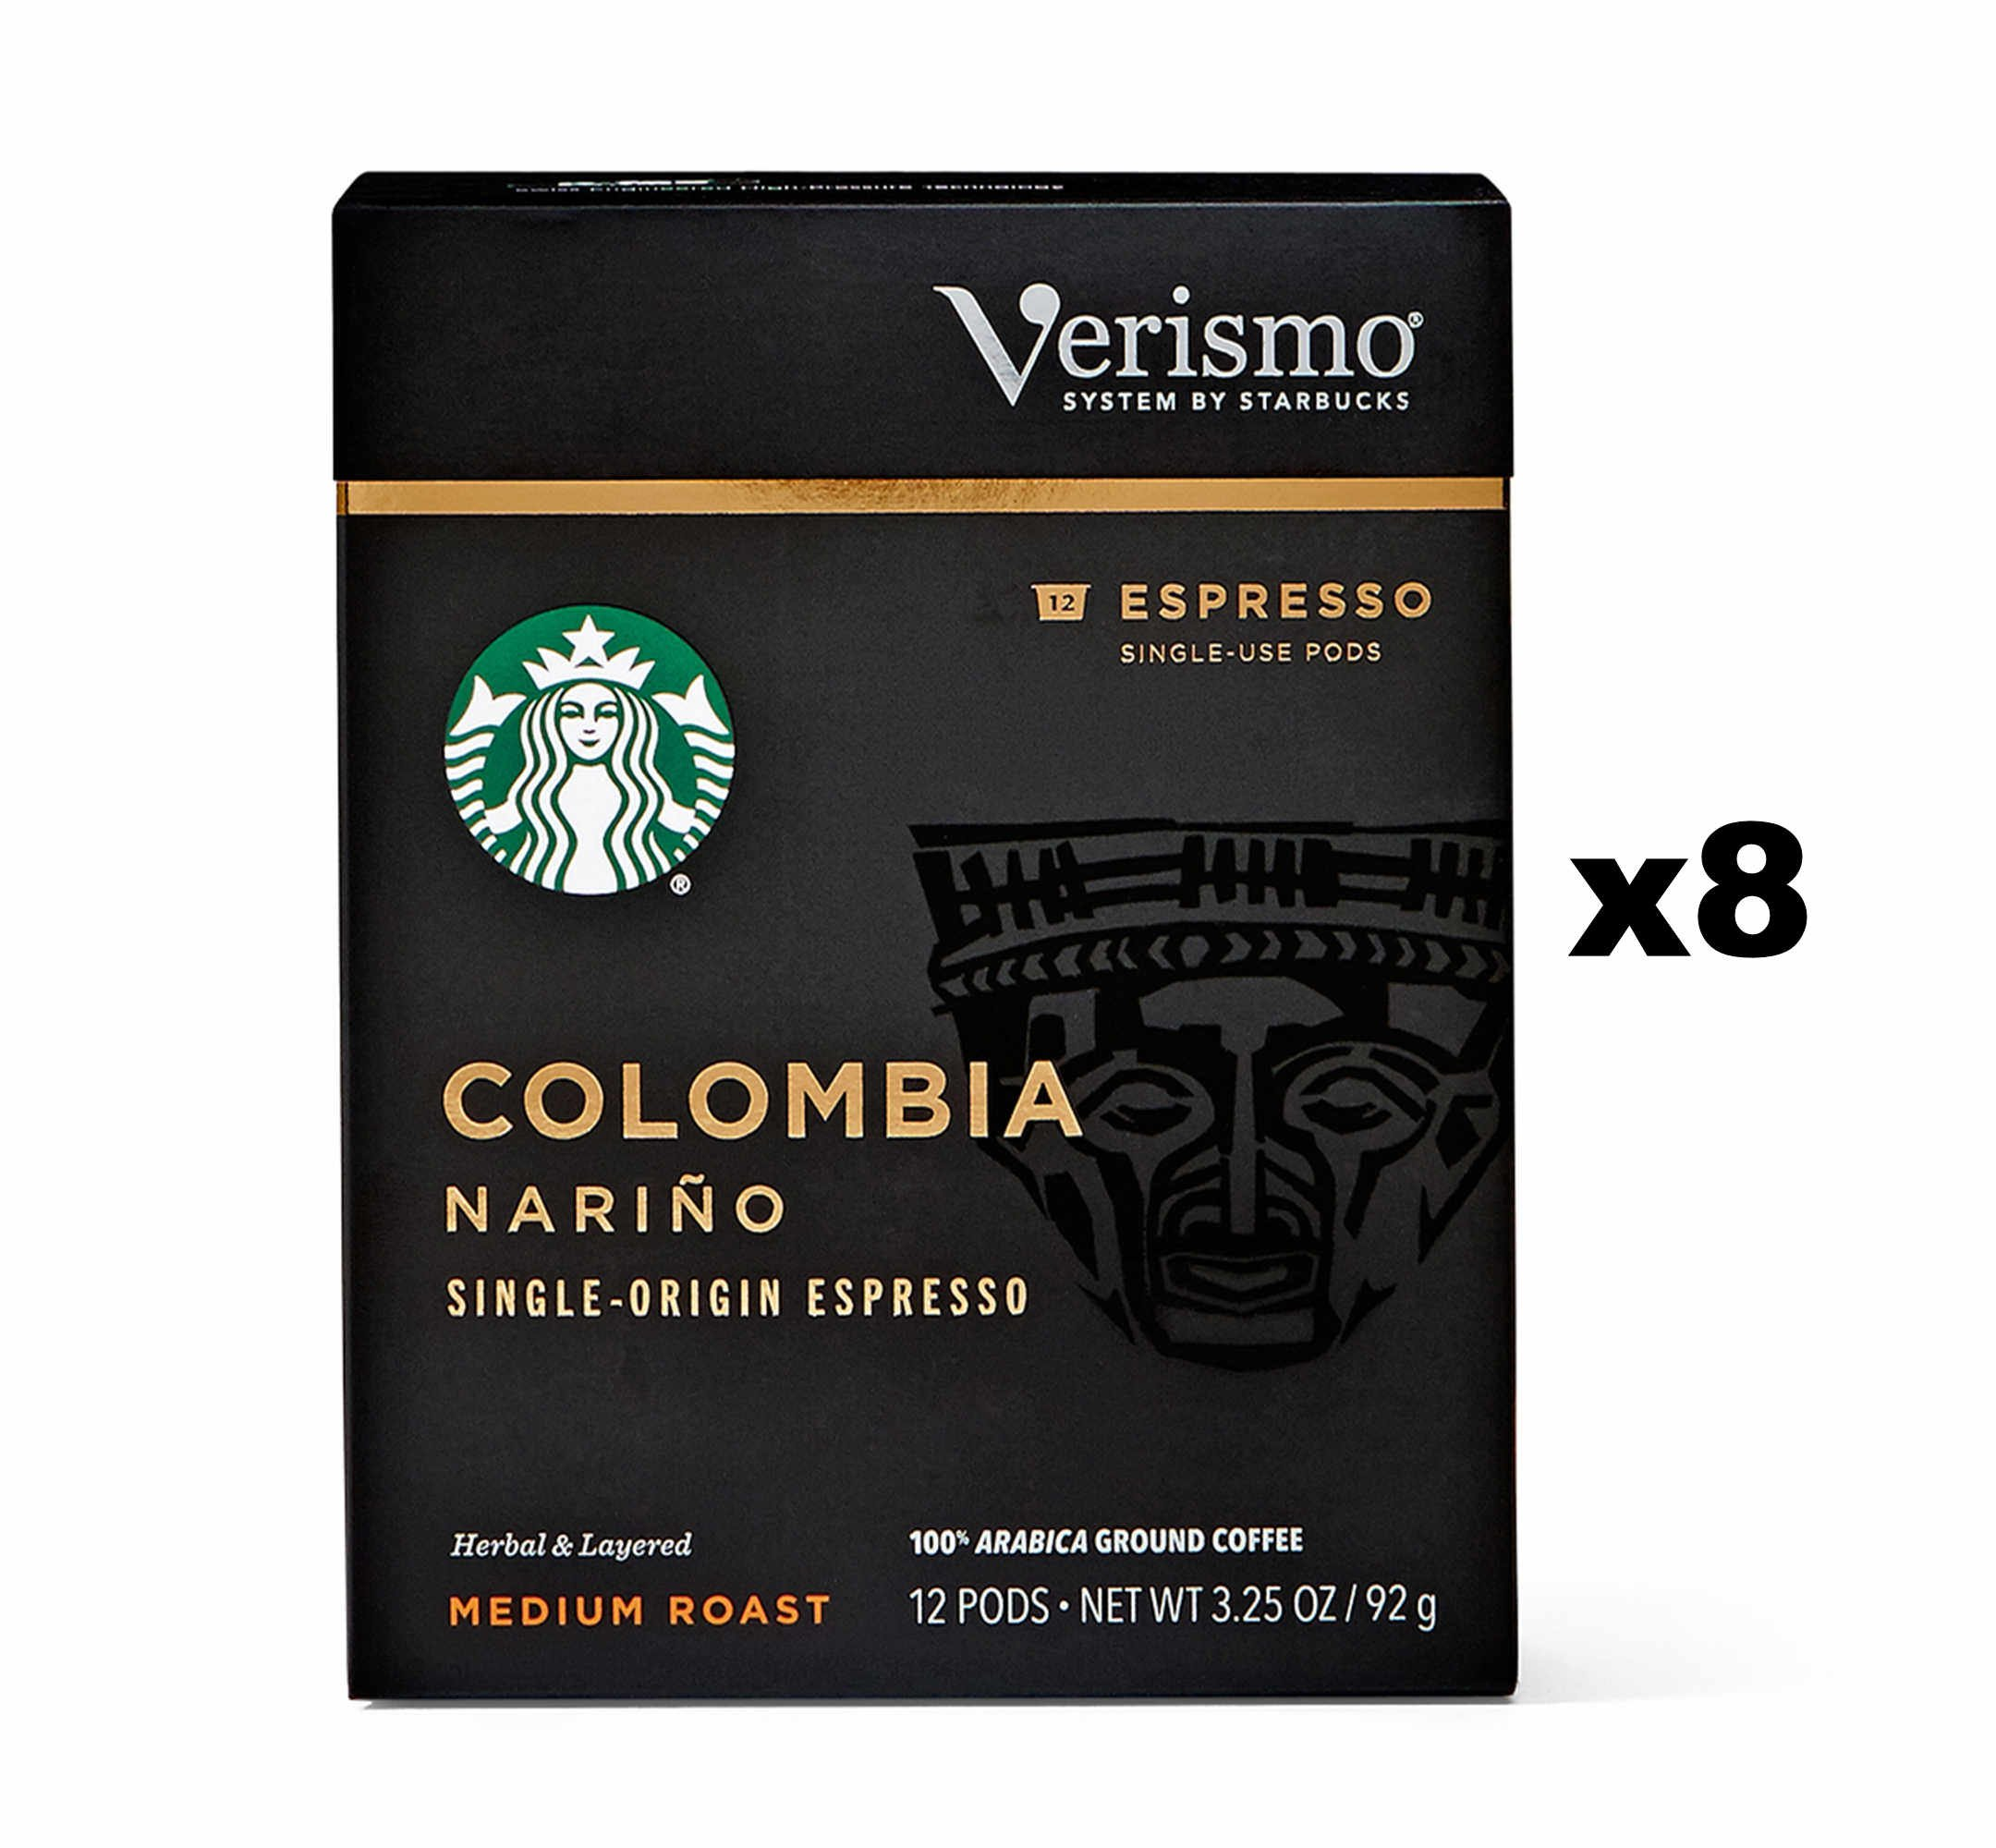 Starbucks Colombia Nariño Espresso Verismo Pods (96 Count) by Starbucks (Image #1)